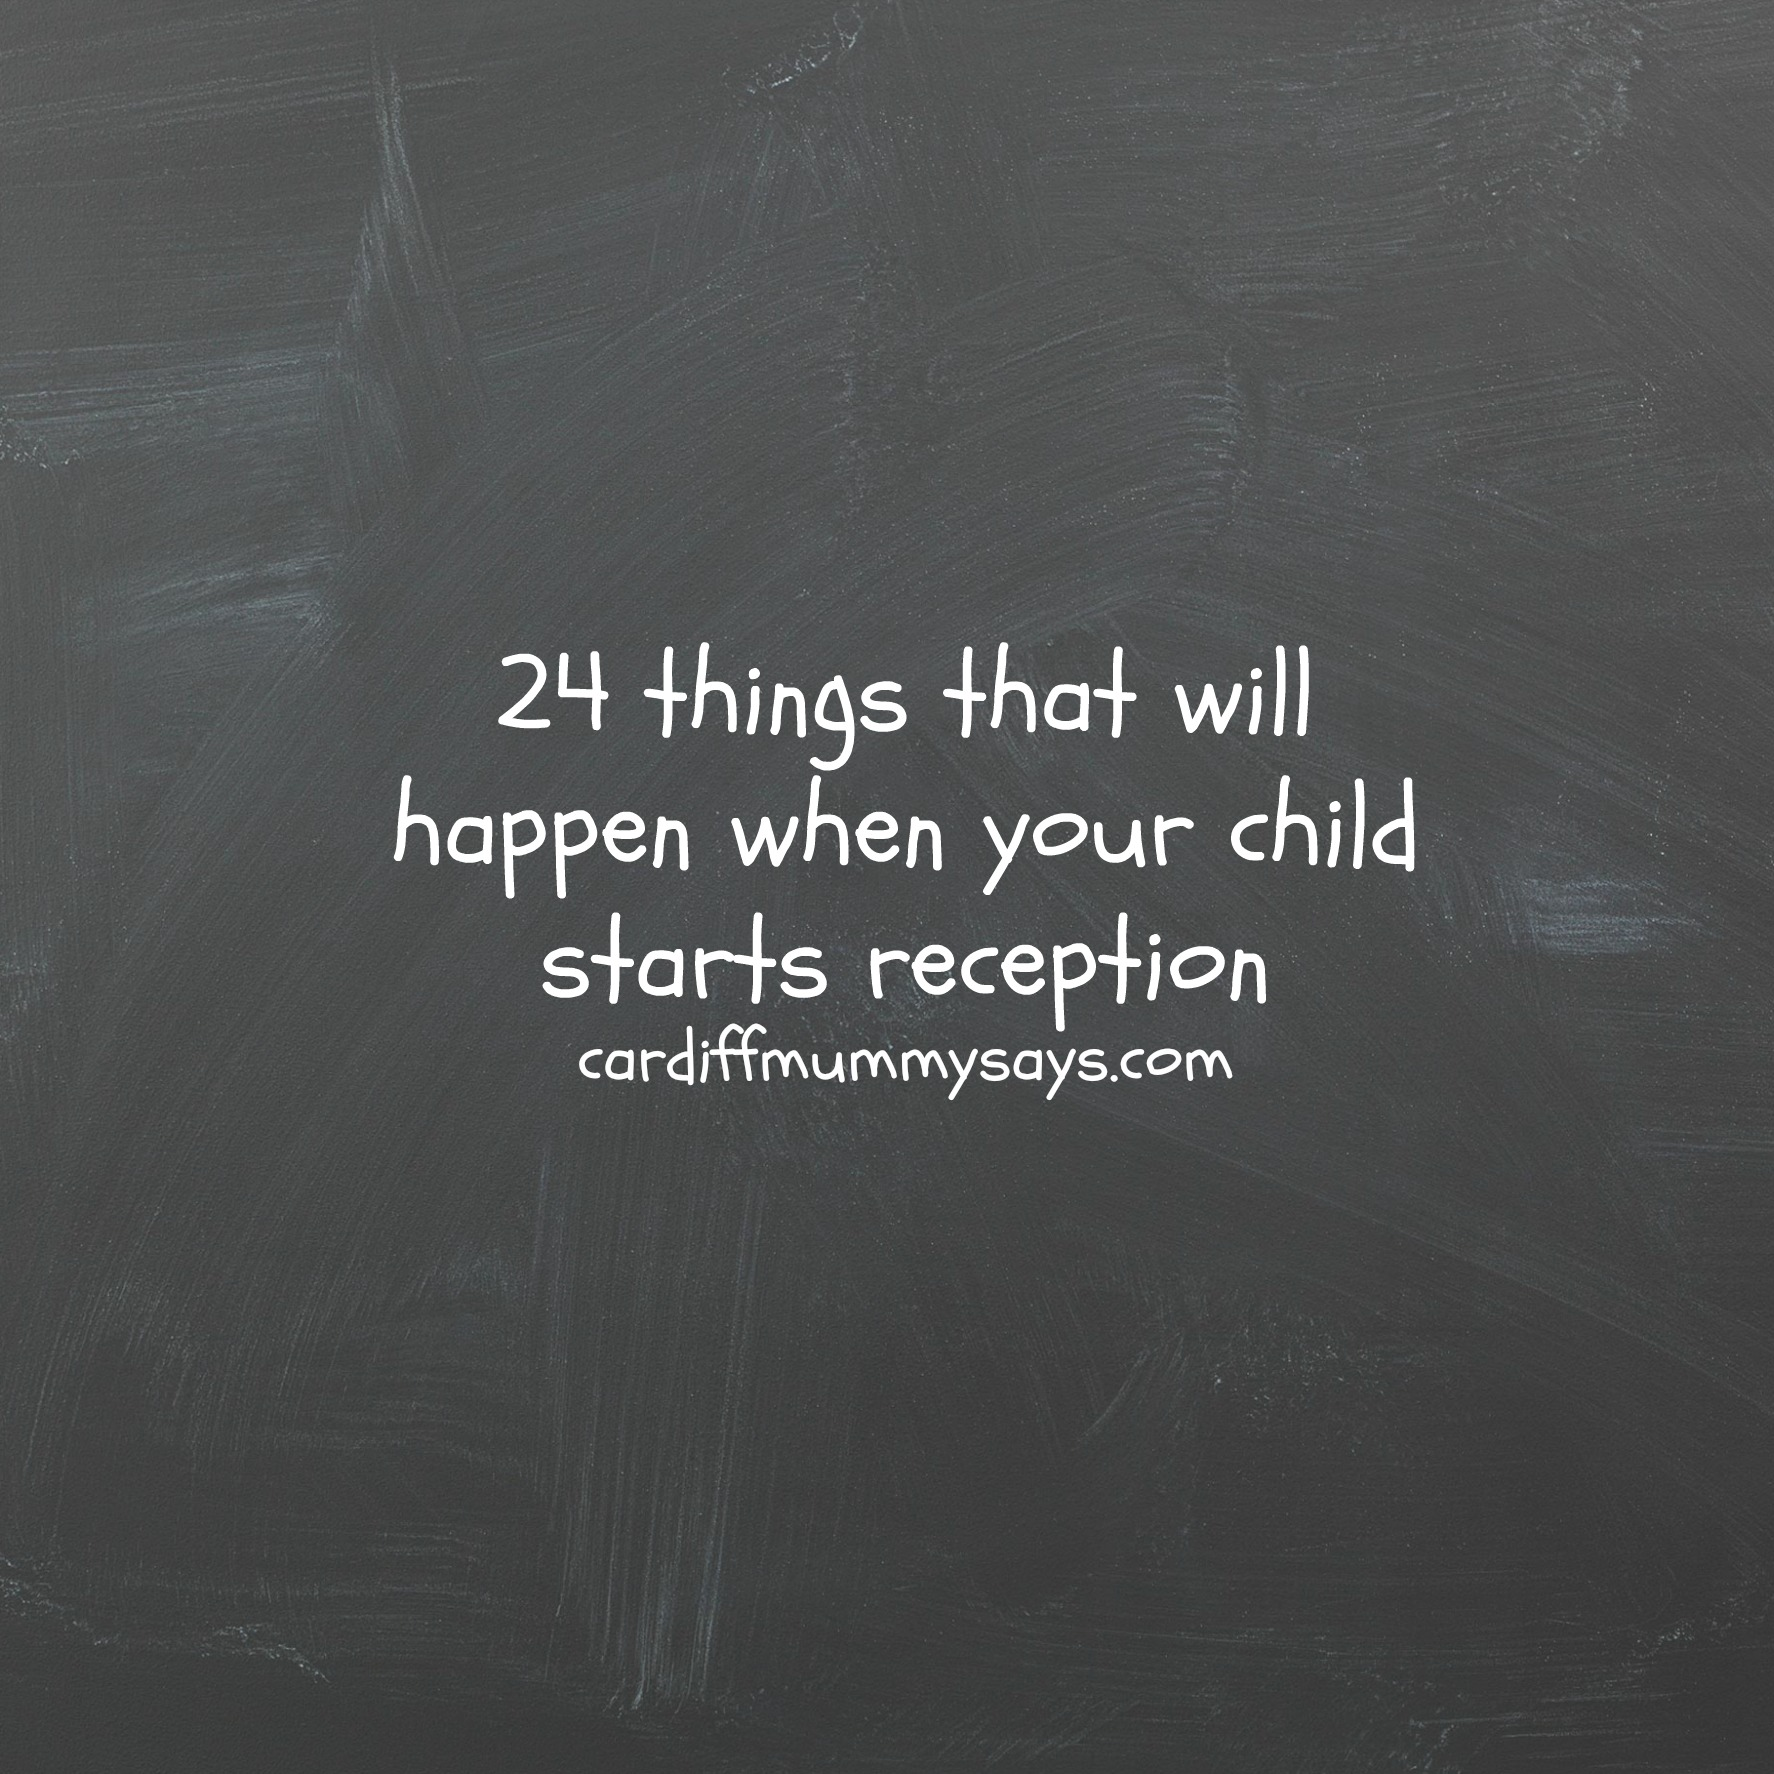 26 08 2016 24 things that will happen when your child starts reception